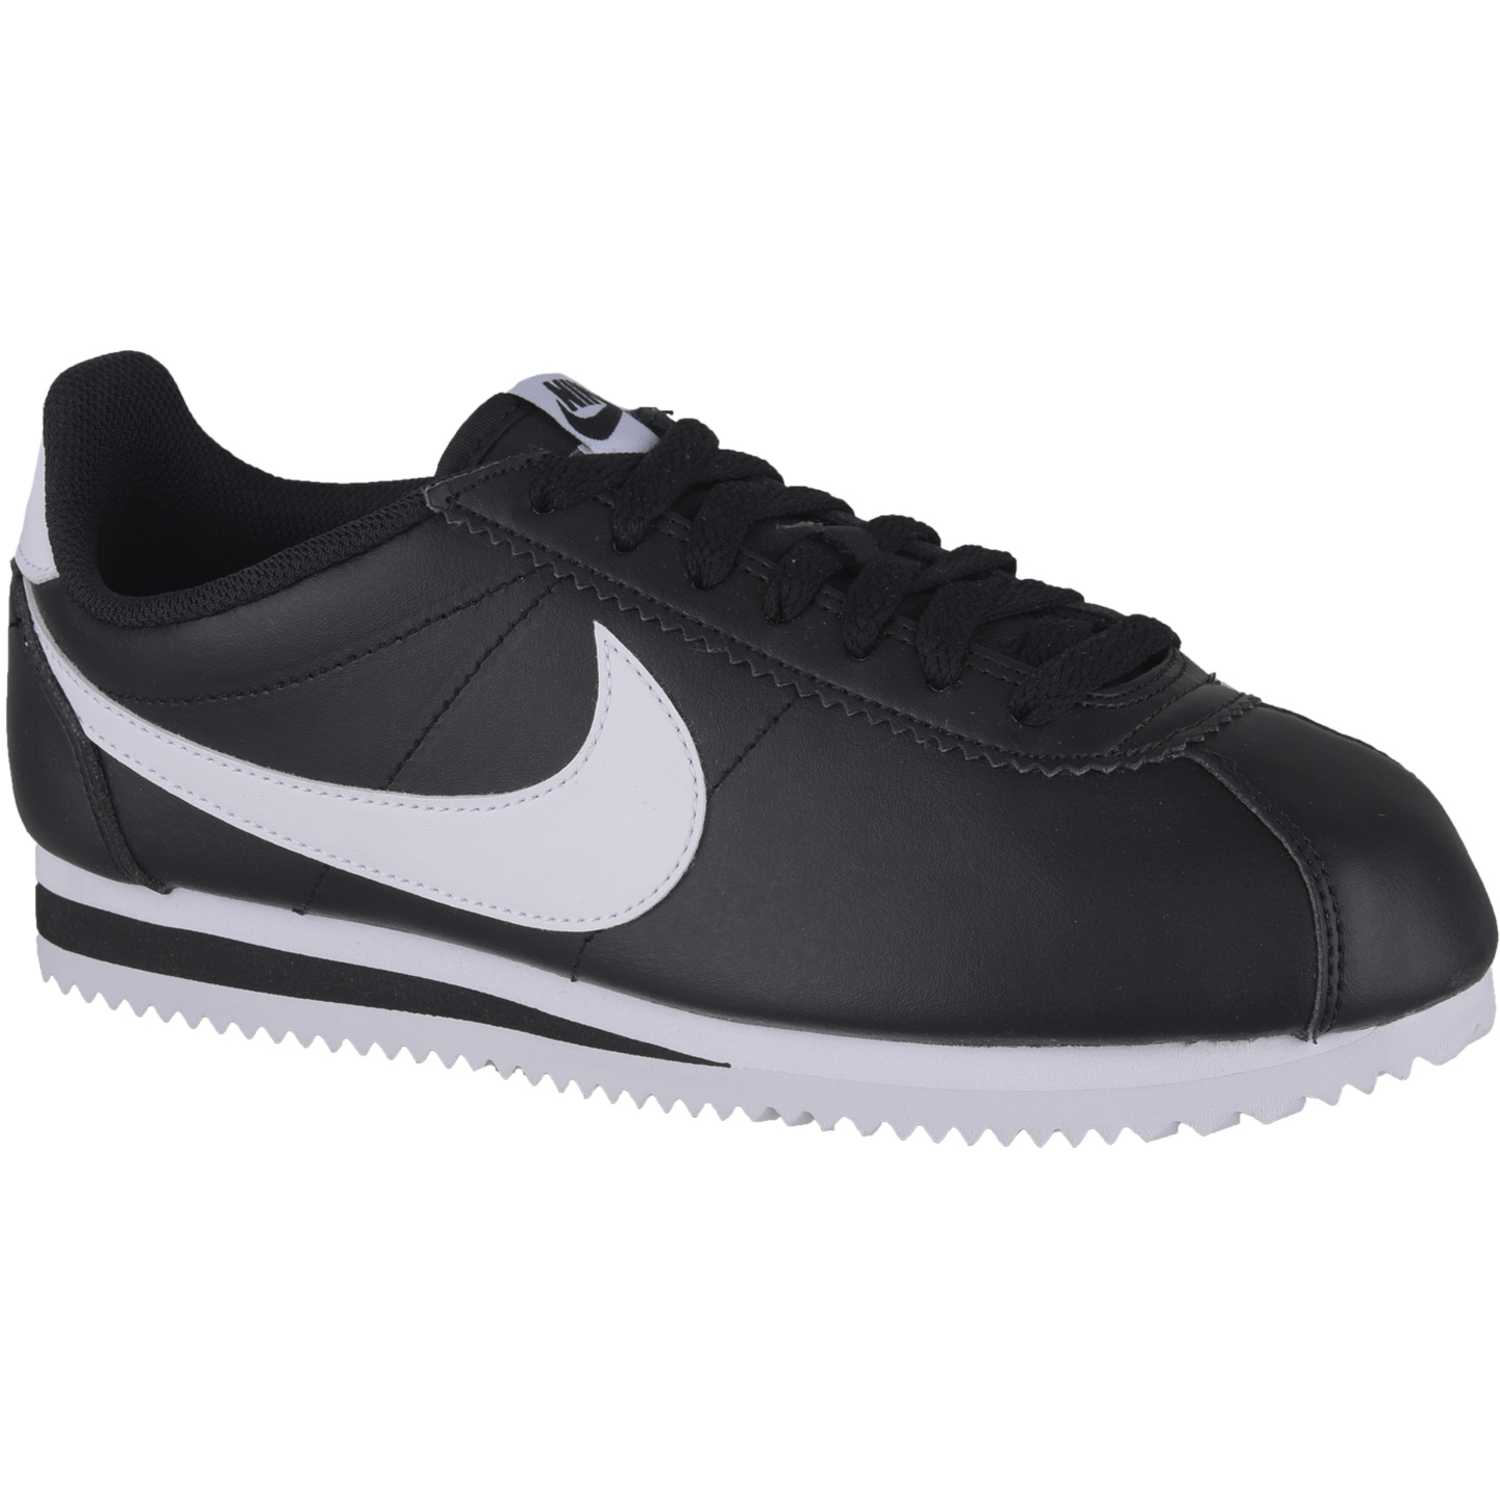 reputable site 6700b 87fe7 Zapatilla de Mujer Nike Negro   Blanco wmns classic cortez leather